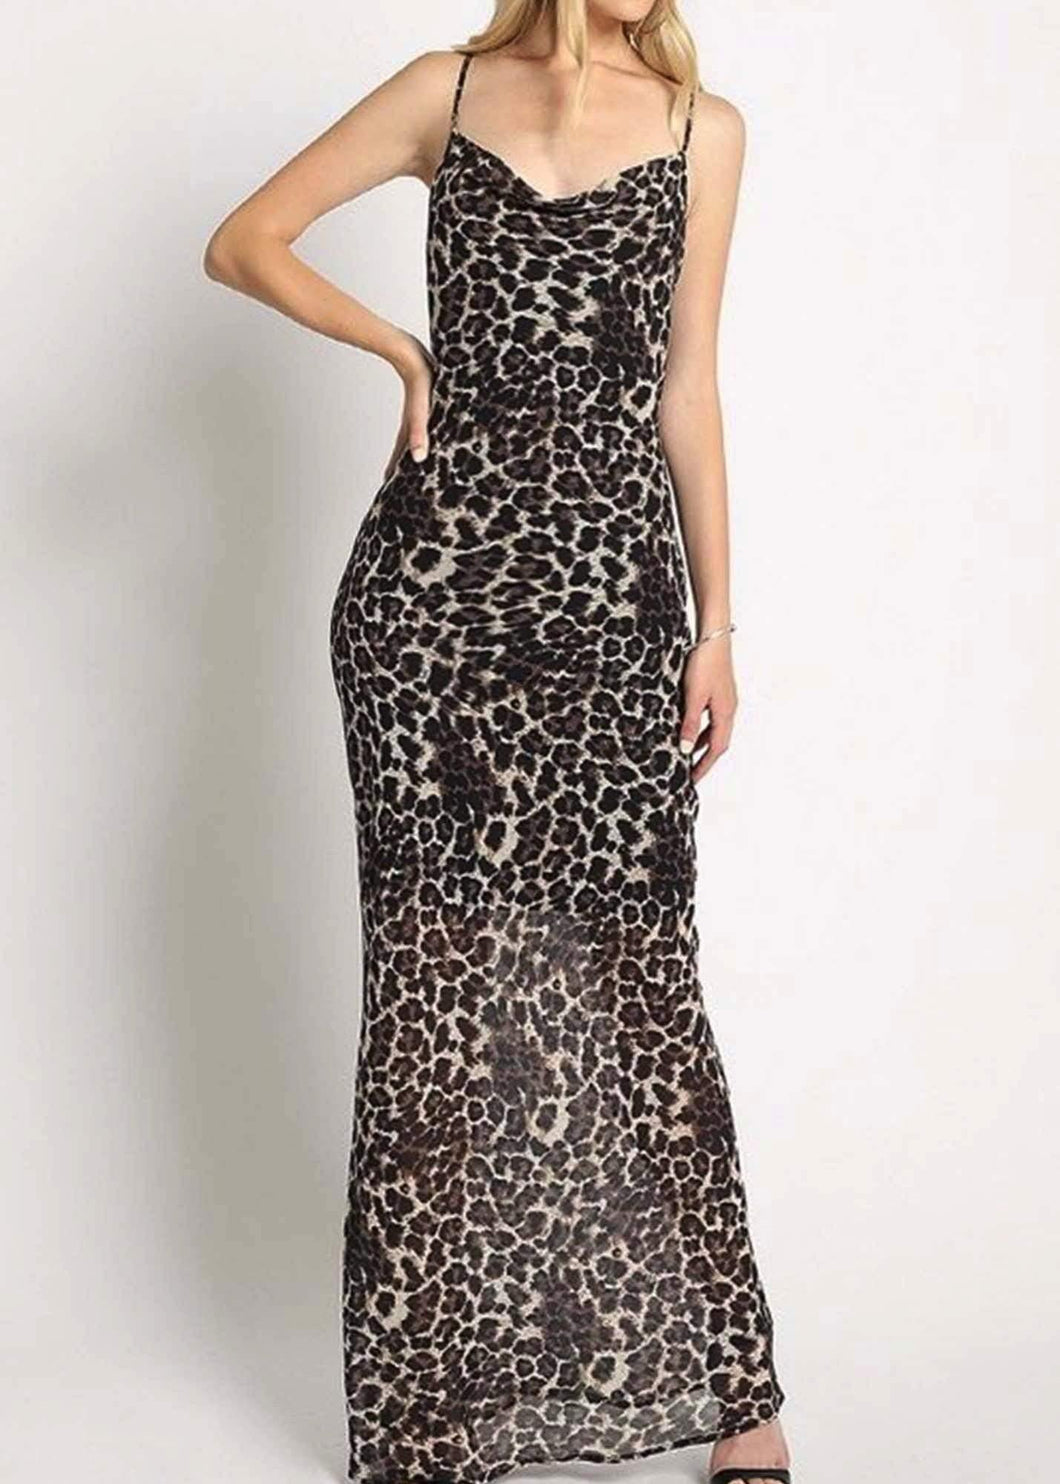 LEOPARD MAXI DRESS - Be Zazzy